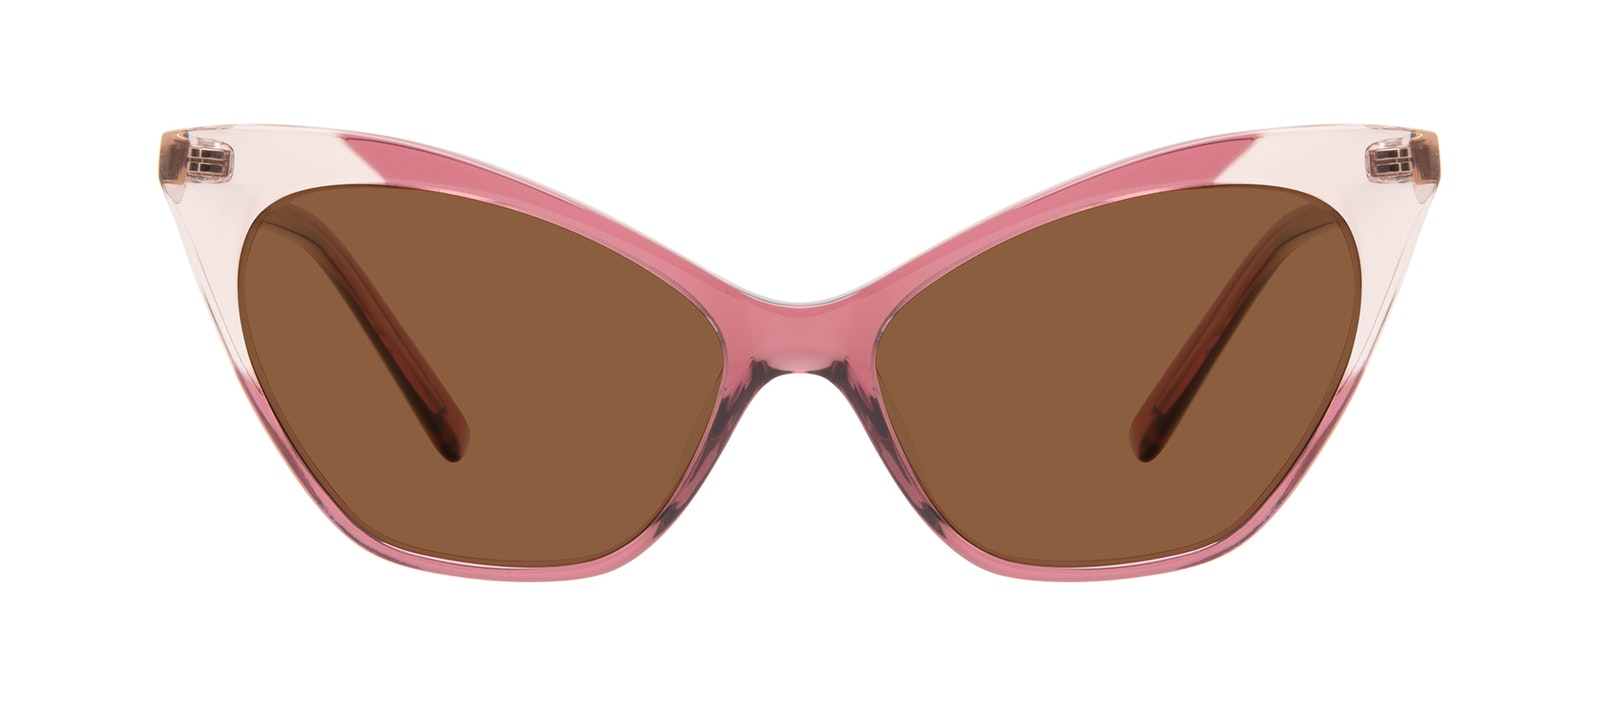 Affordable Fashion Glasses Cat Eye Sunglasses Women Gossip Orchid Pink Front